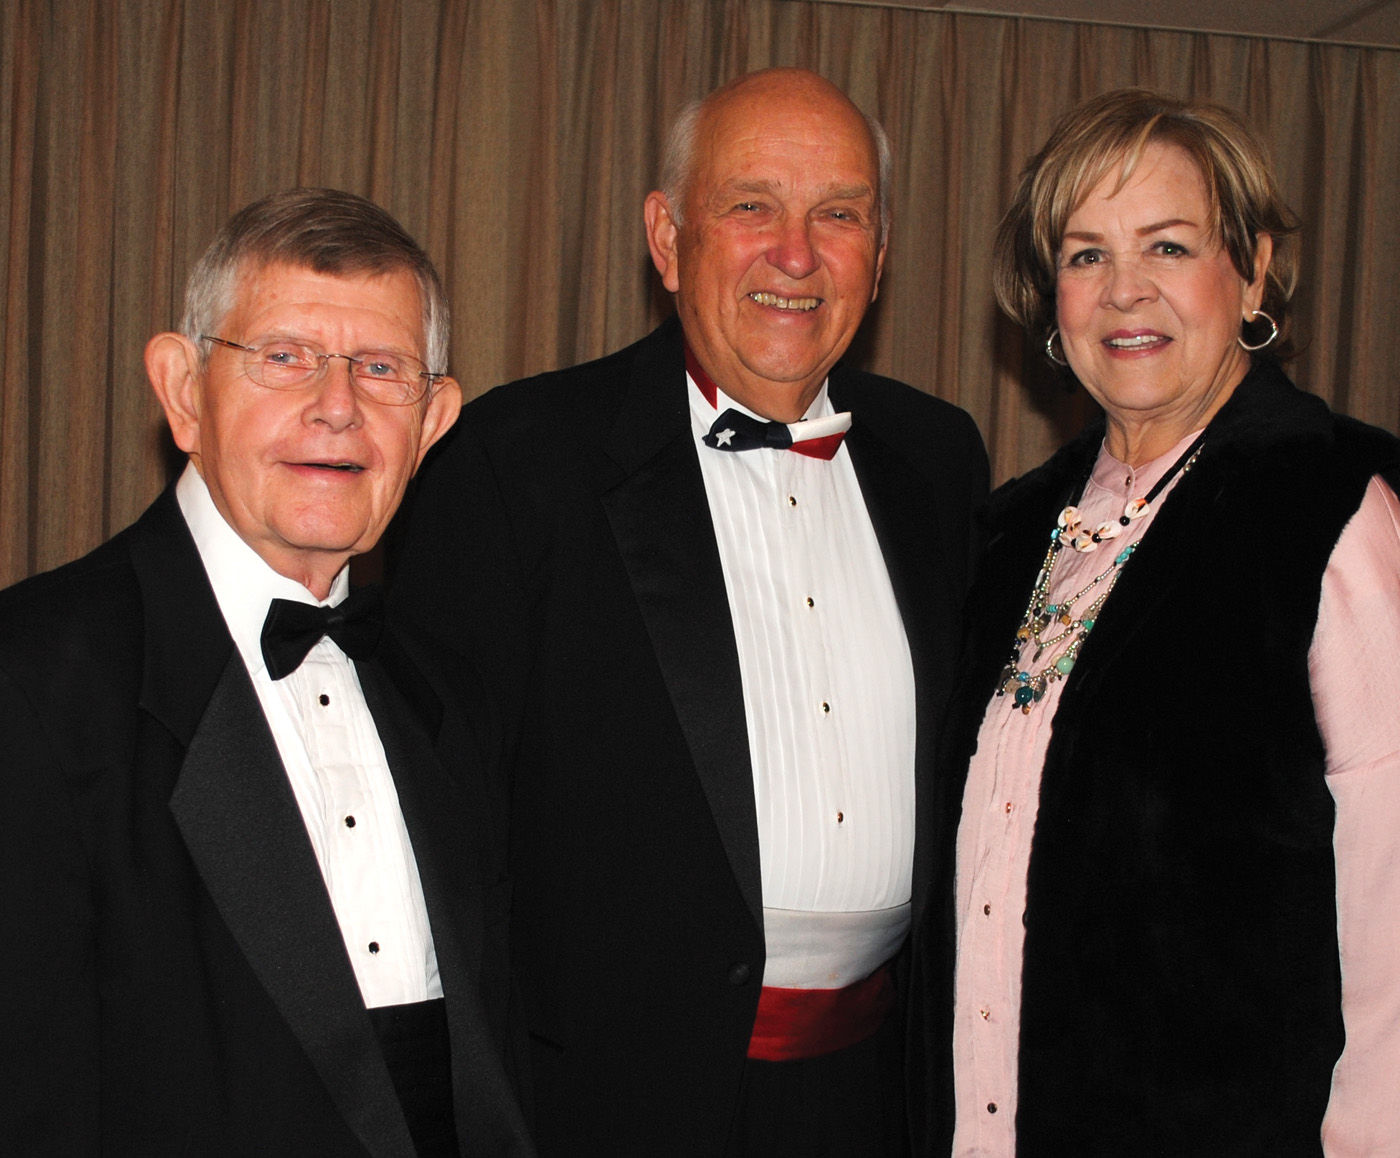 Attorney Joe Barlow, left, the George Carlisle Distinguished Service Award winner, joins Citizen of the Year Harv Hartmen for a photo with Ann Hacker, the Dennis Johnson Memorial Small Business Award winner at the CCEF Gala.